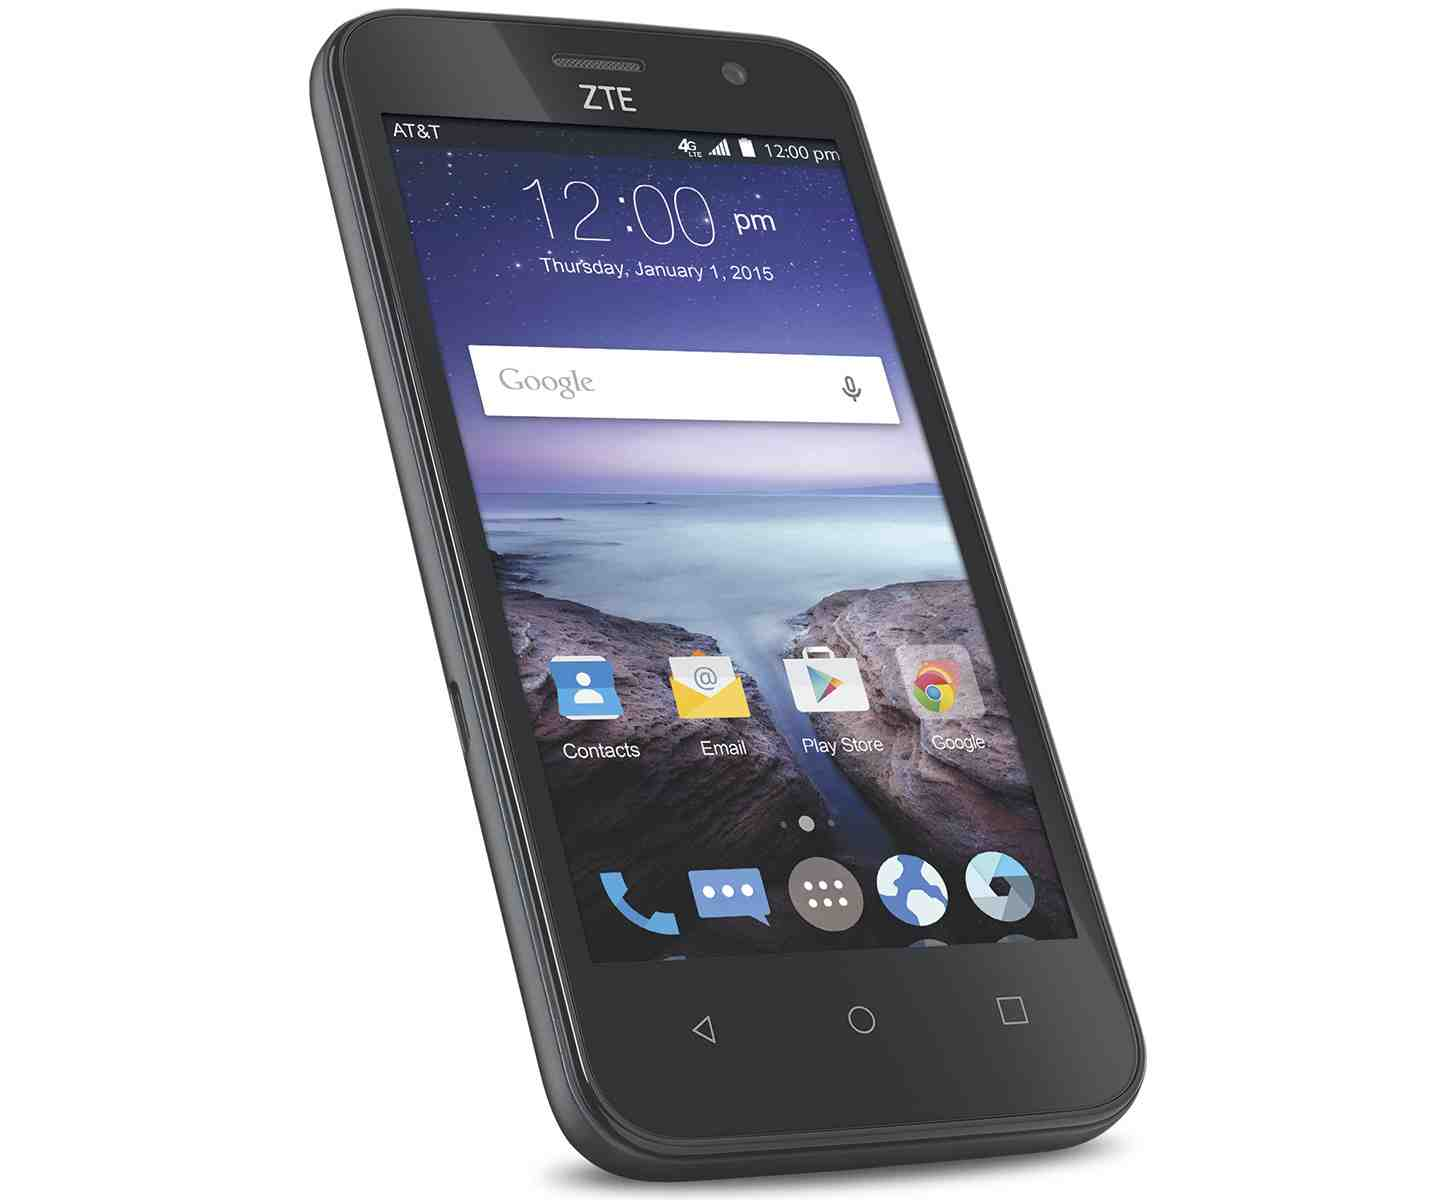 Zte Unveiled Two New Android Phones Zte Maven And Zte